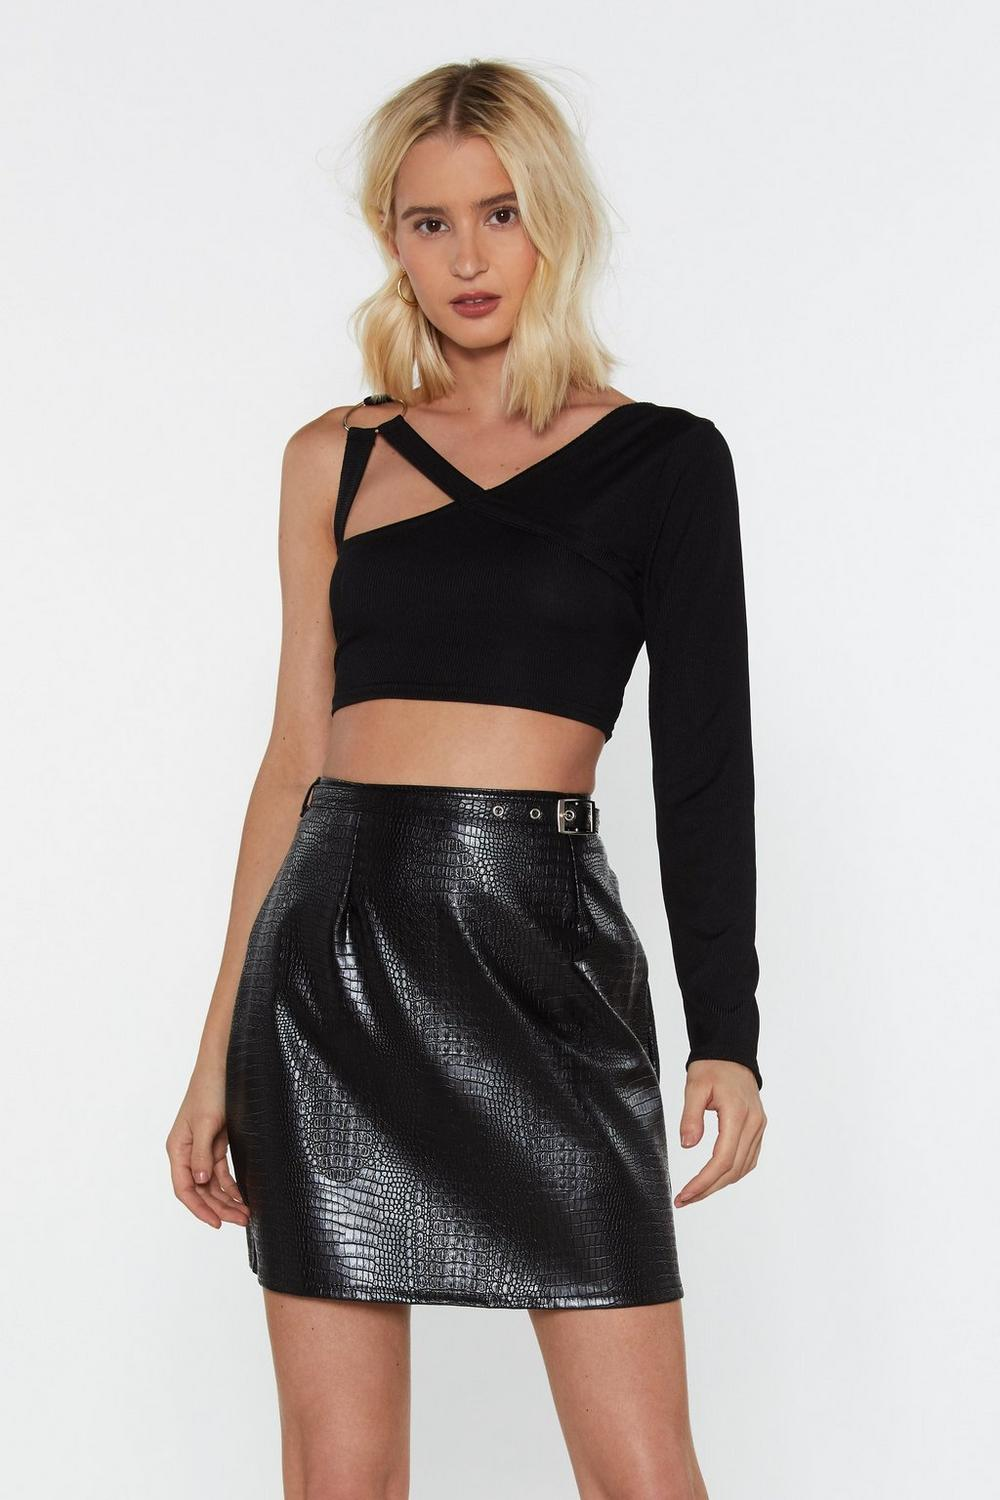 Metal Ring Strappy One Should Crop Top by Nasty Gal